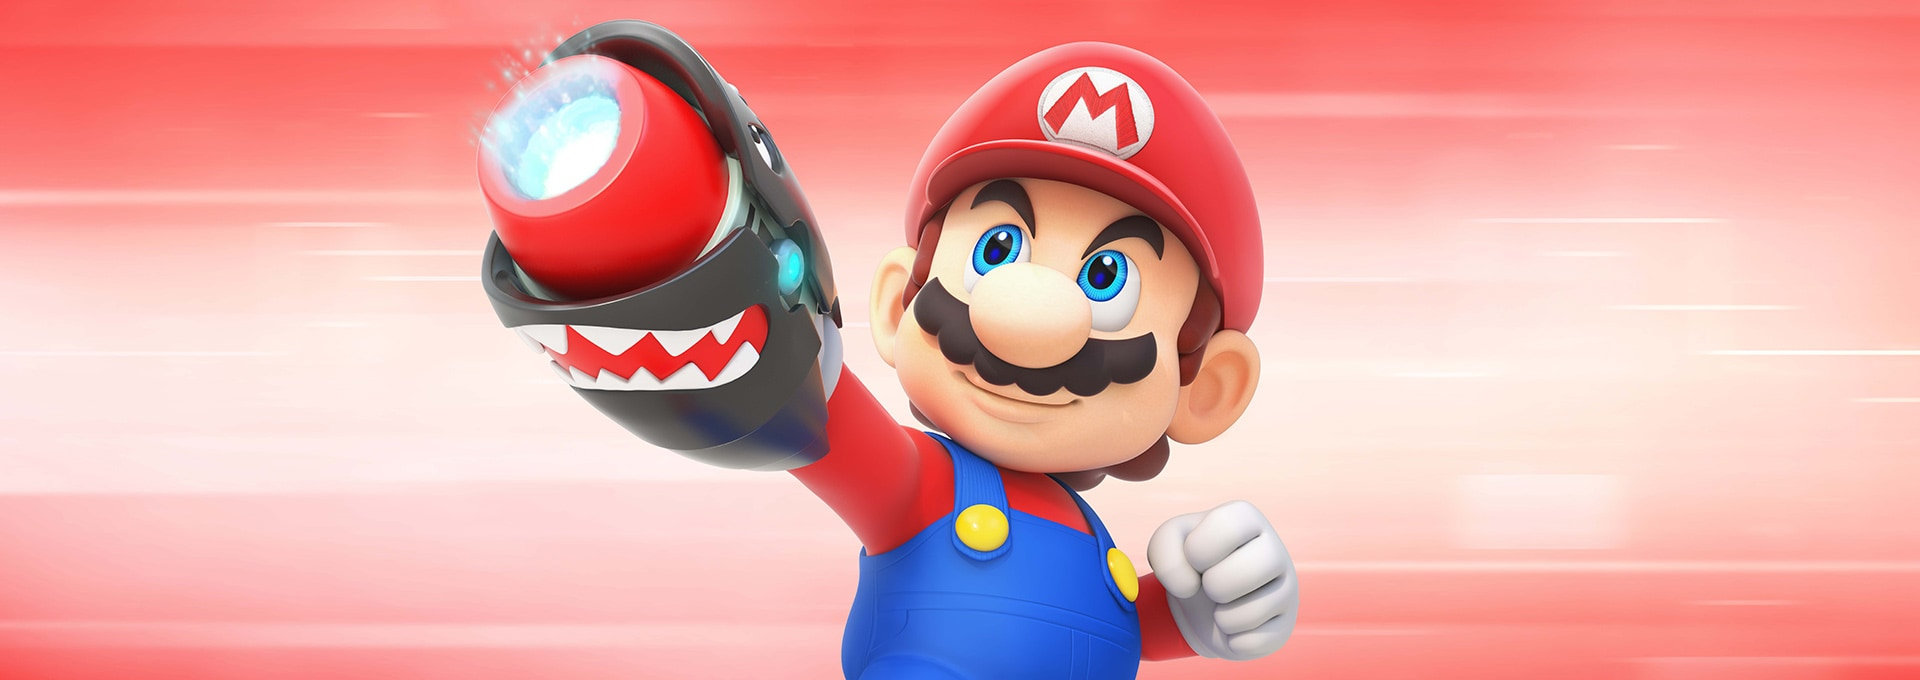 Mario-Character_Cover2-min_1920x680